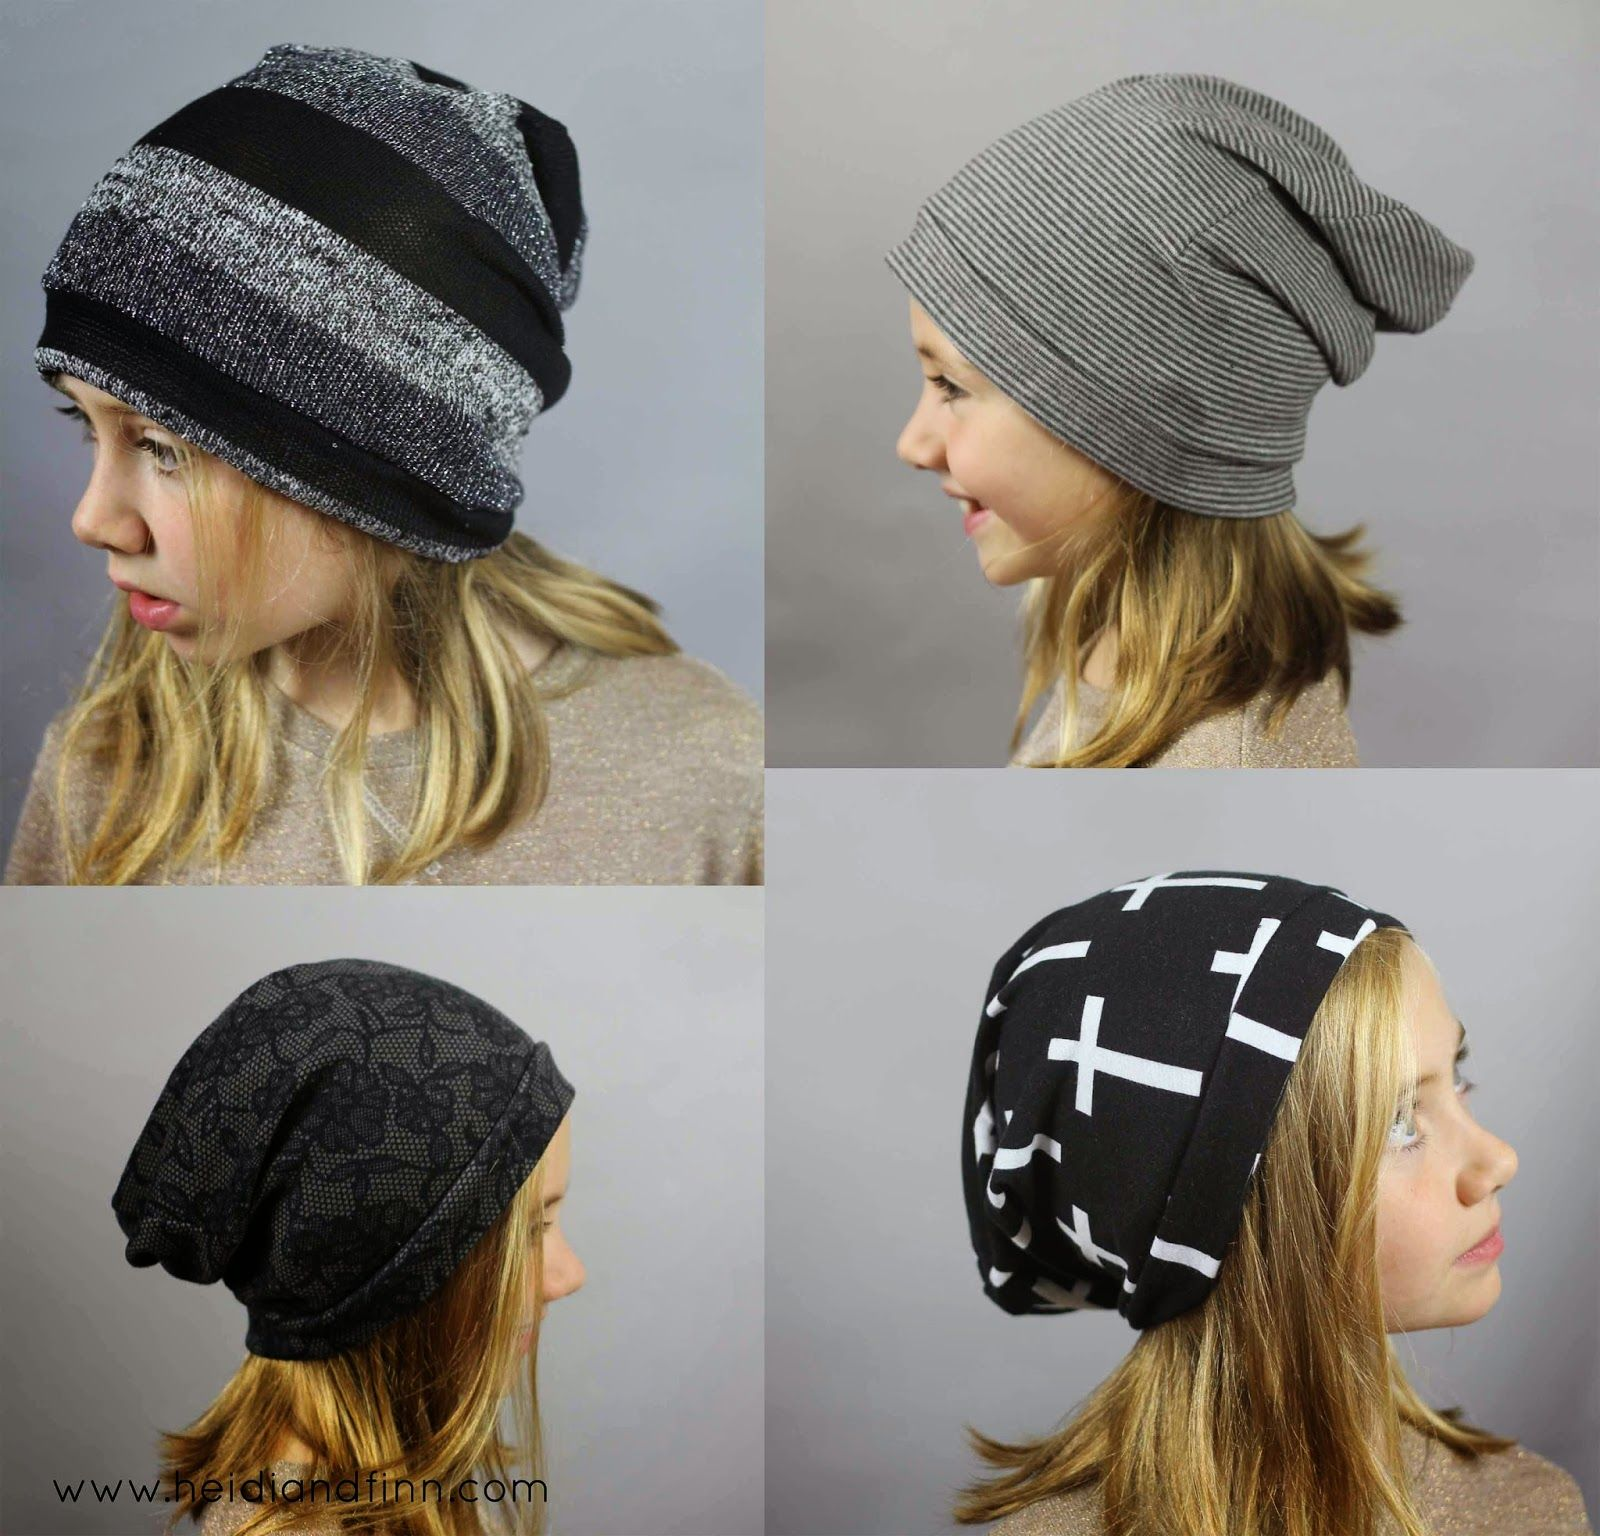 Project 2 for kids clothes week - HATS! more specifically oh so cool slouchy  beanies! Somehow my kids seem to lose about 10 hats each fall winter  season e31fdbd122f